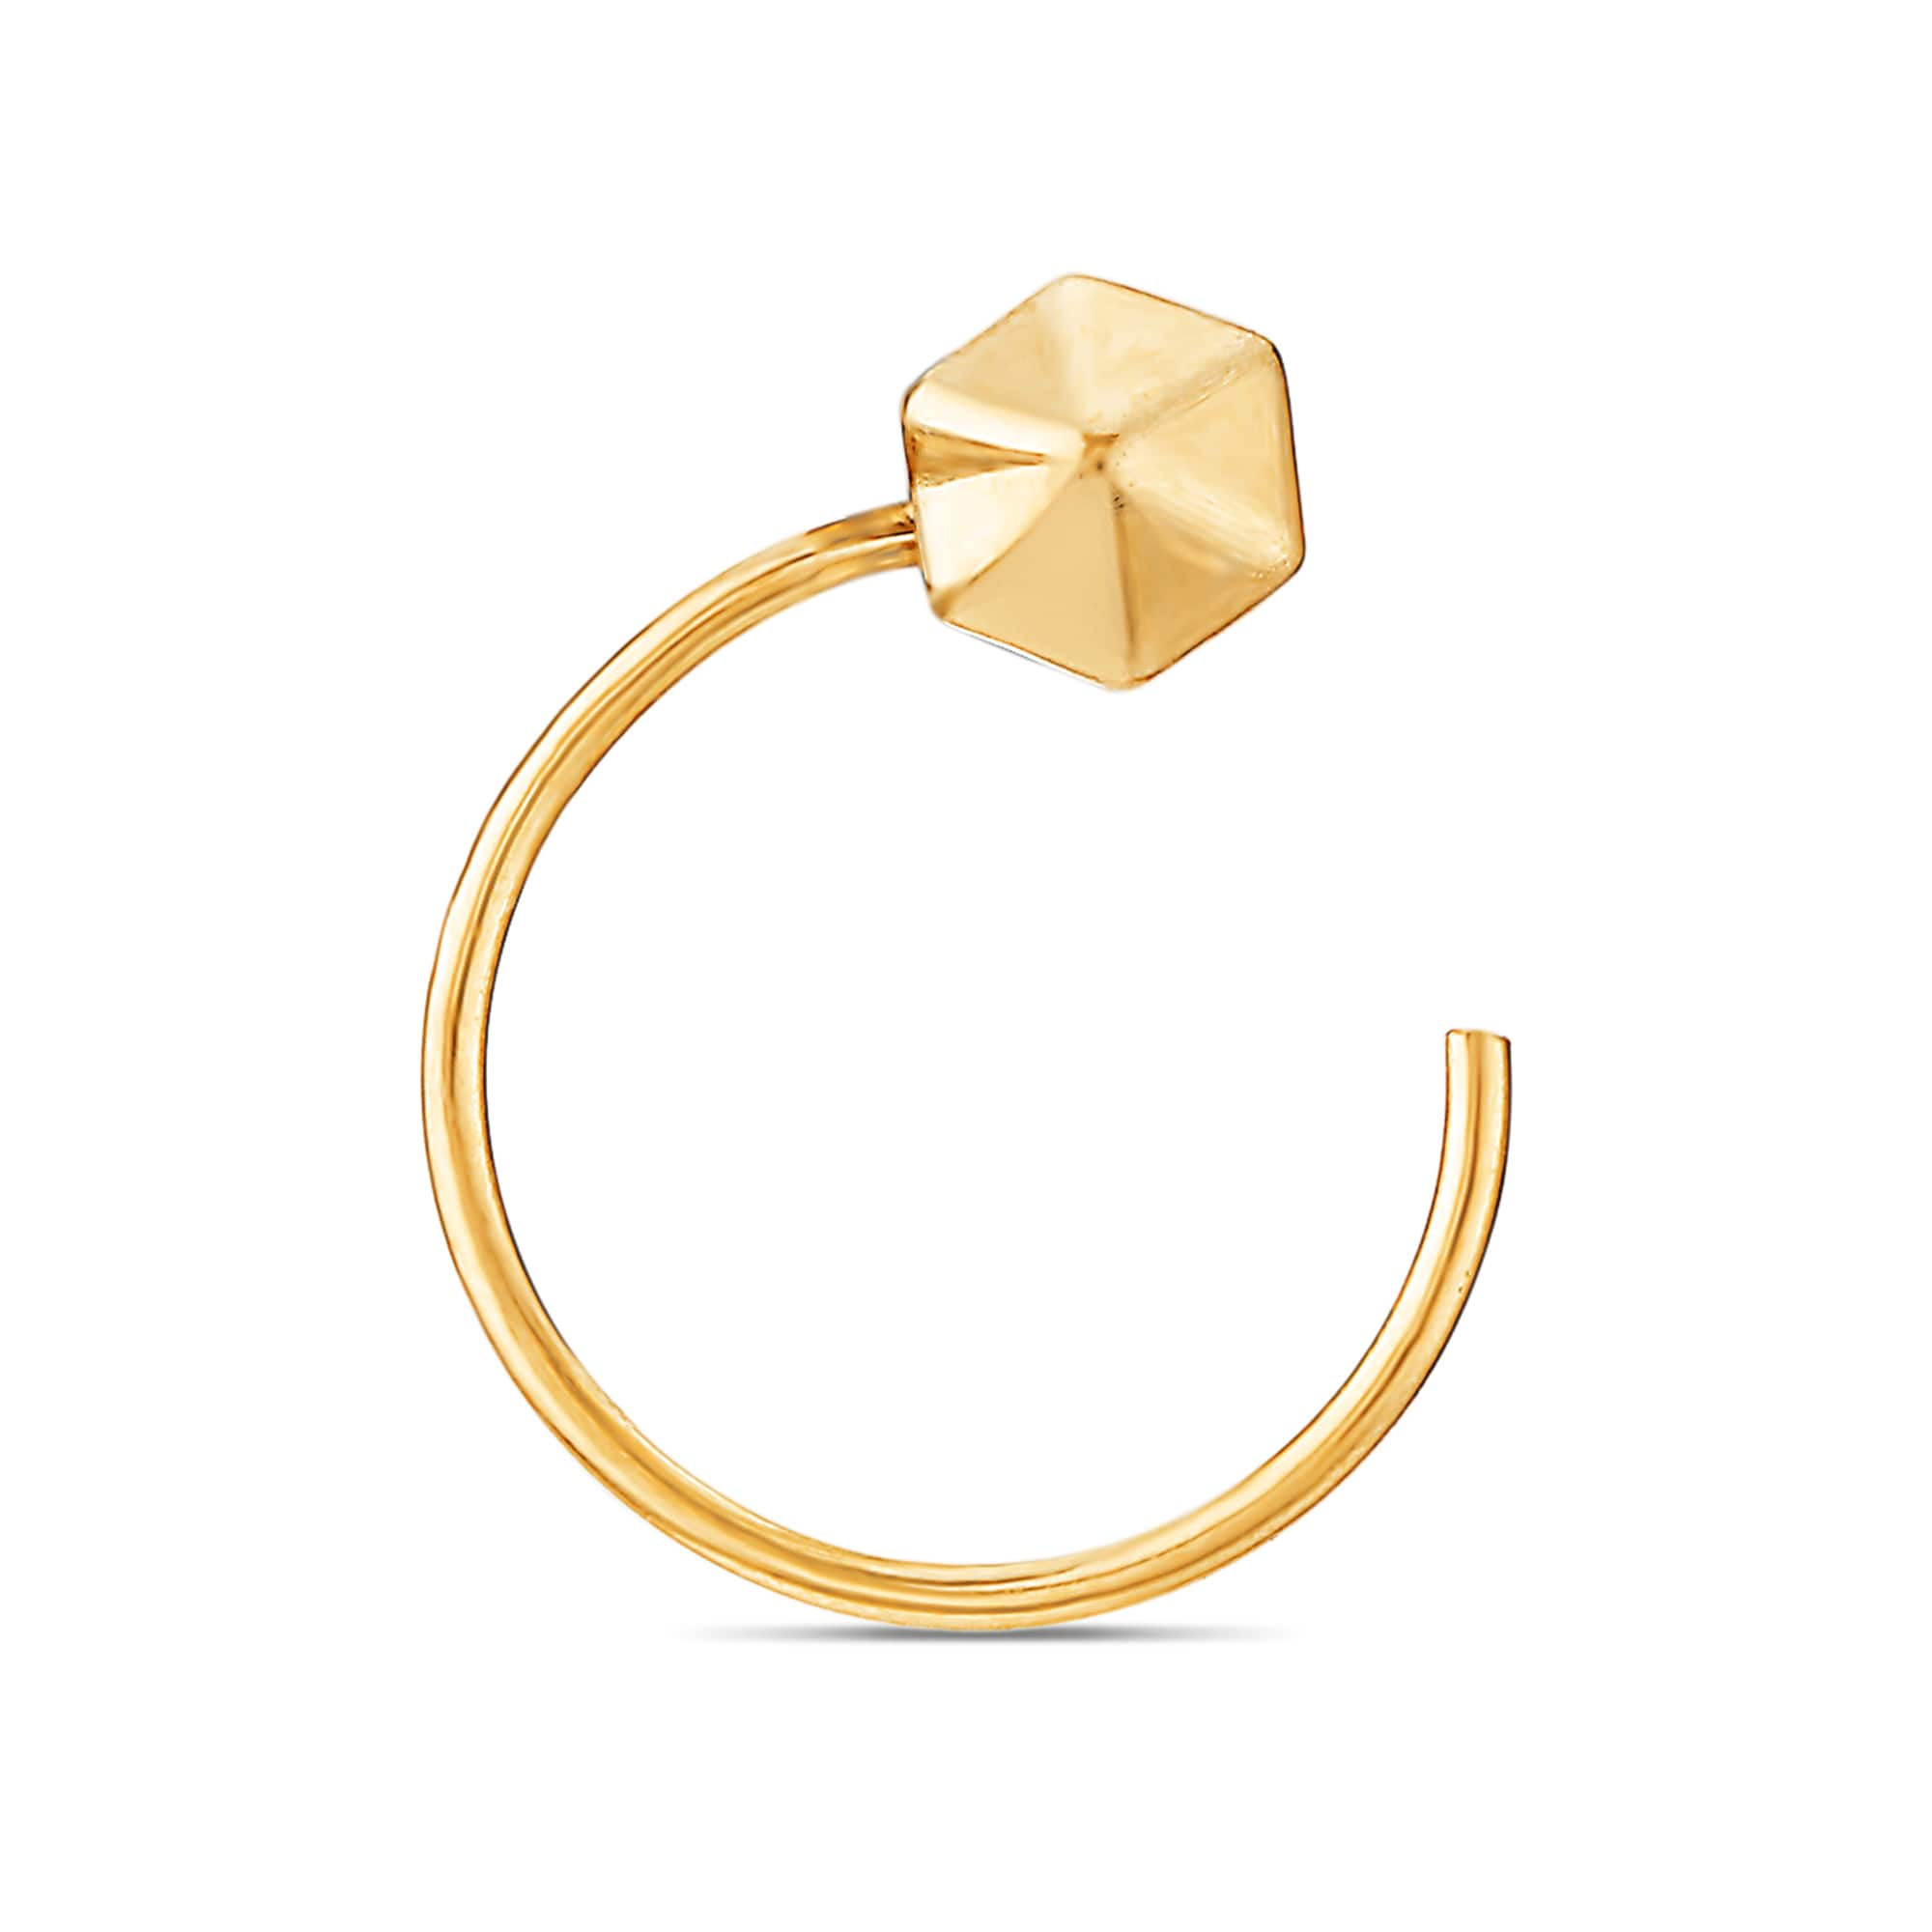 Mia Everyday Essentials By Tanishq 14kt Yellow Gold Nose Pin For